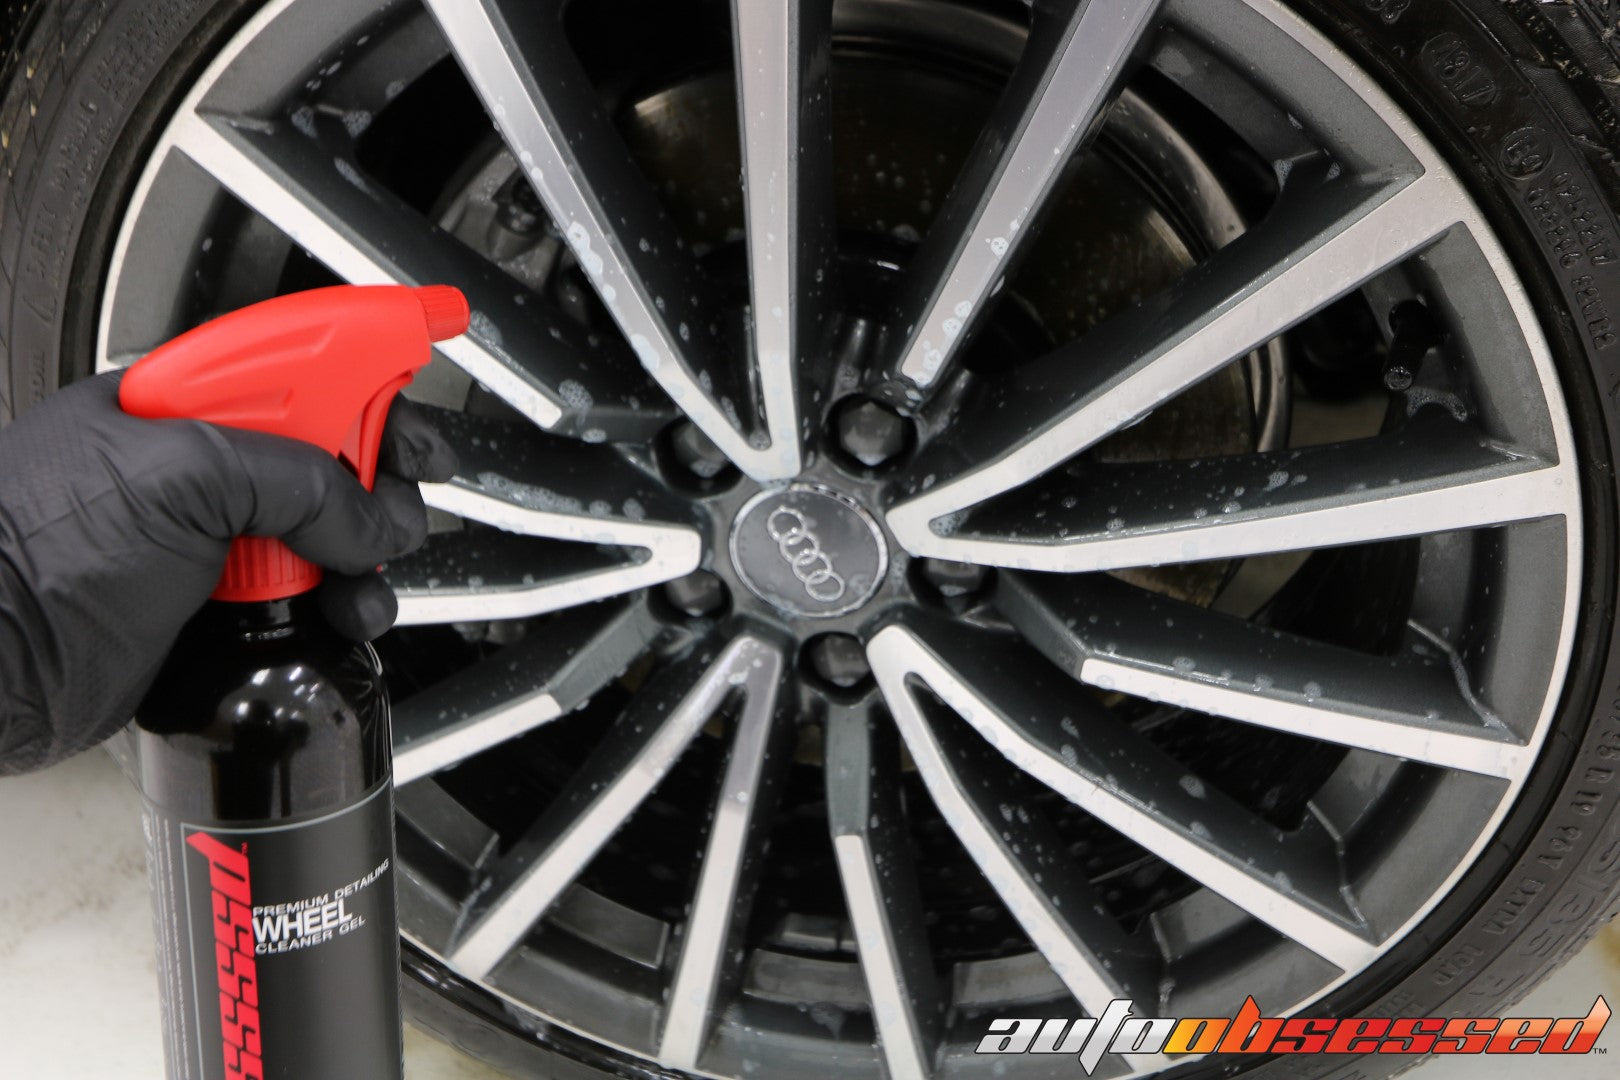 2020 Audi S5 Wheel Detailing Wheel Cleaner - Auto Obsessed